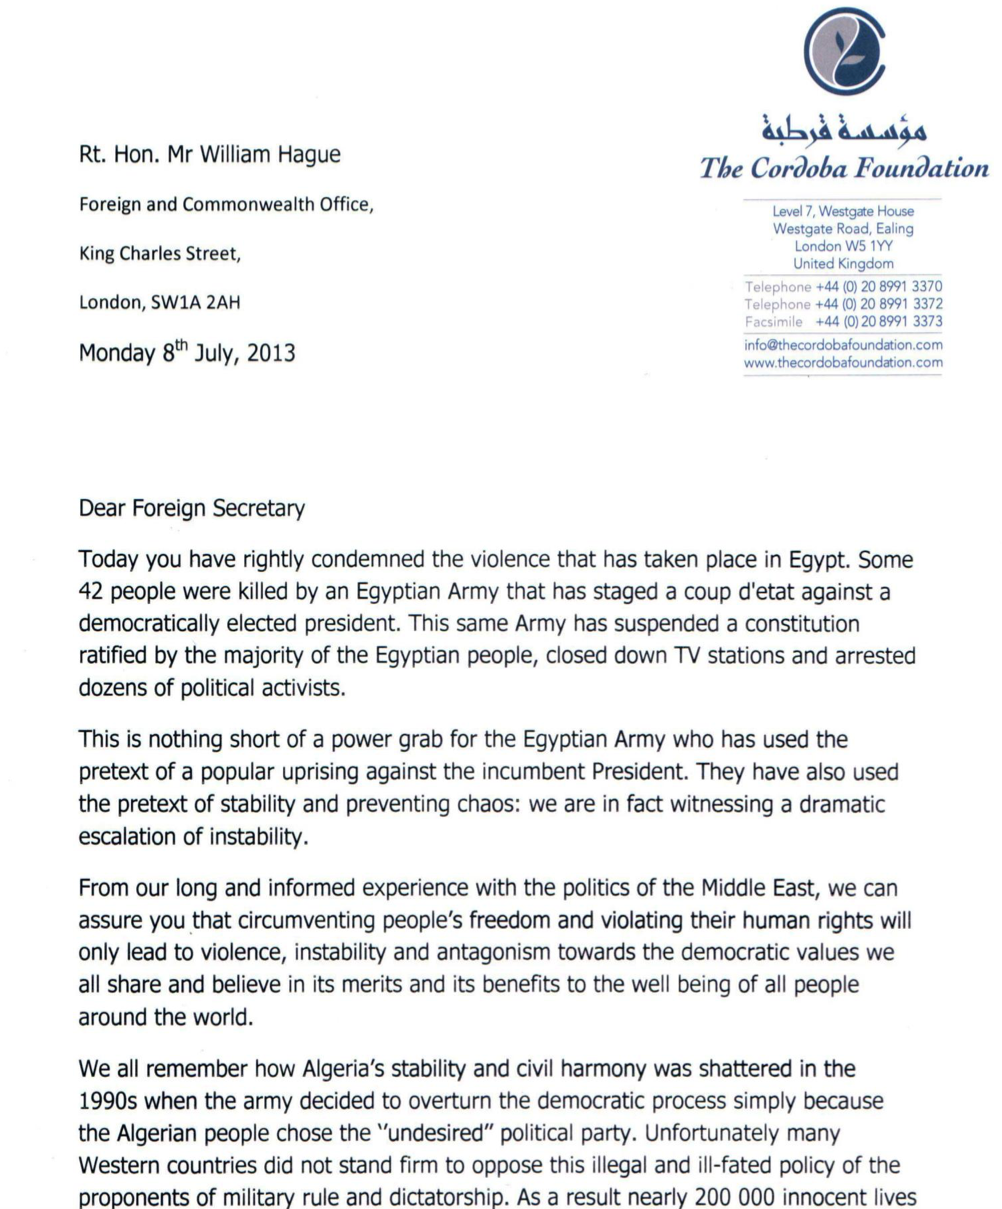 The Cordoba Foundation writes to the US Secretary of State and UK Foreign Secretary regarding Egypt